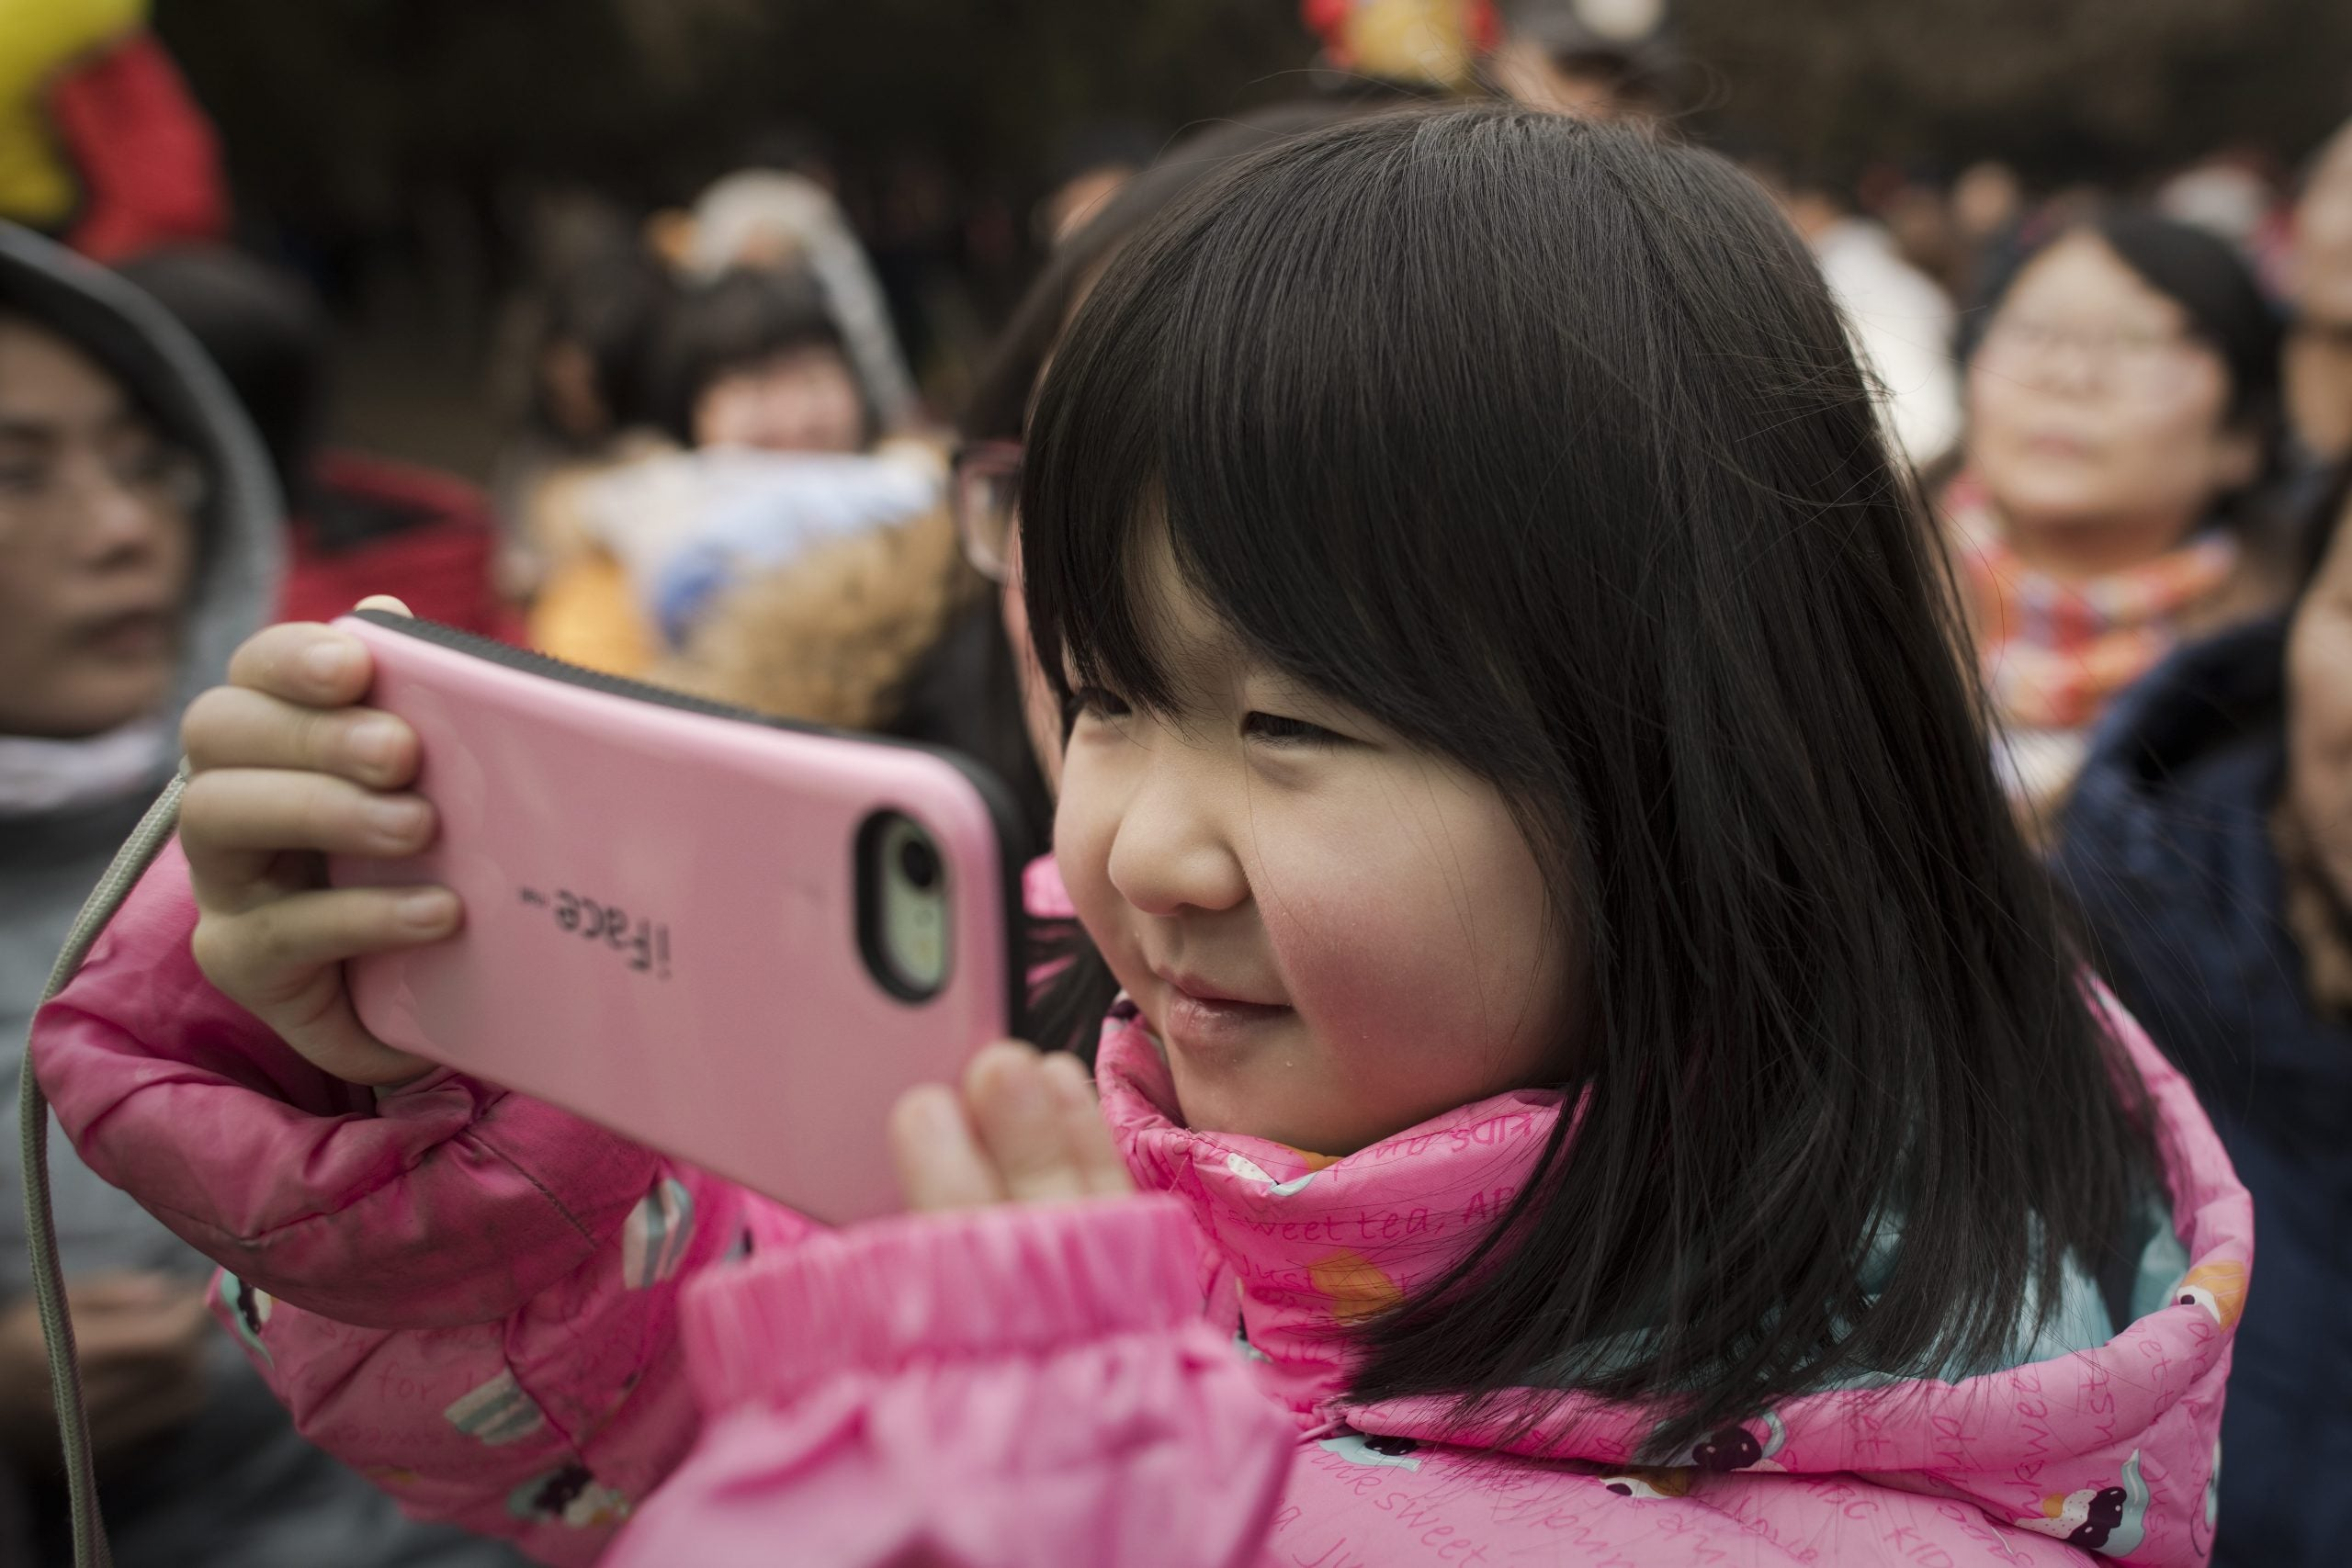 Stop scaremongering about kids spending time on their phones